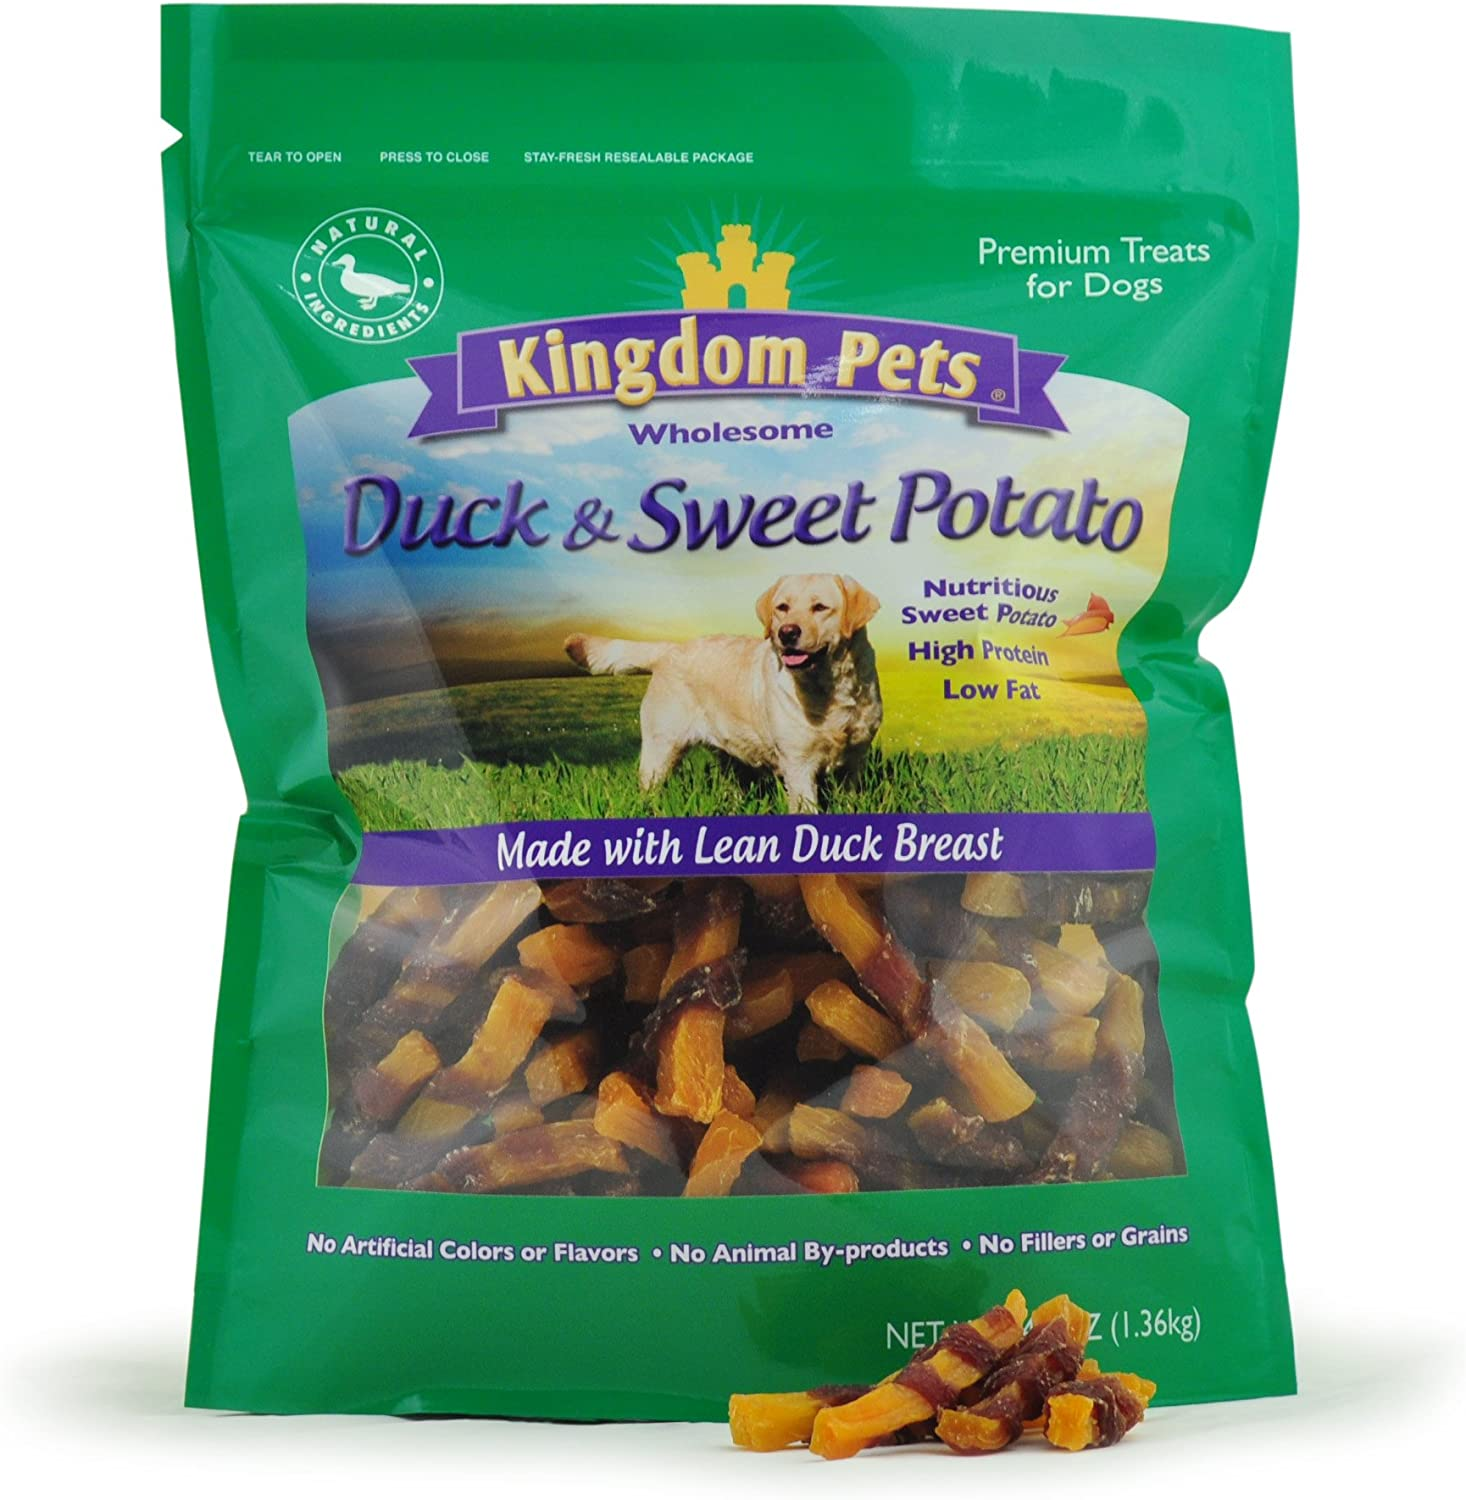 Kingdom Pets Filler Free Duck Jerky & Sweet Potato Twists, Premium Treats for Dogs, 48-ounce bag